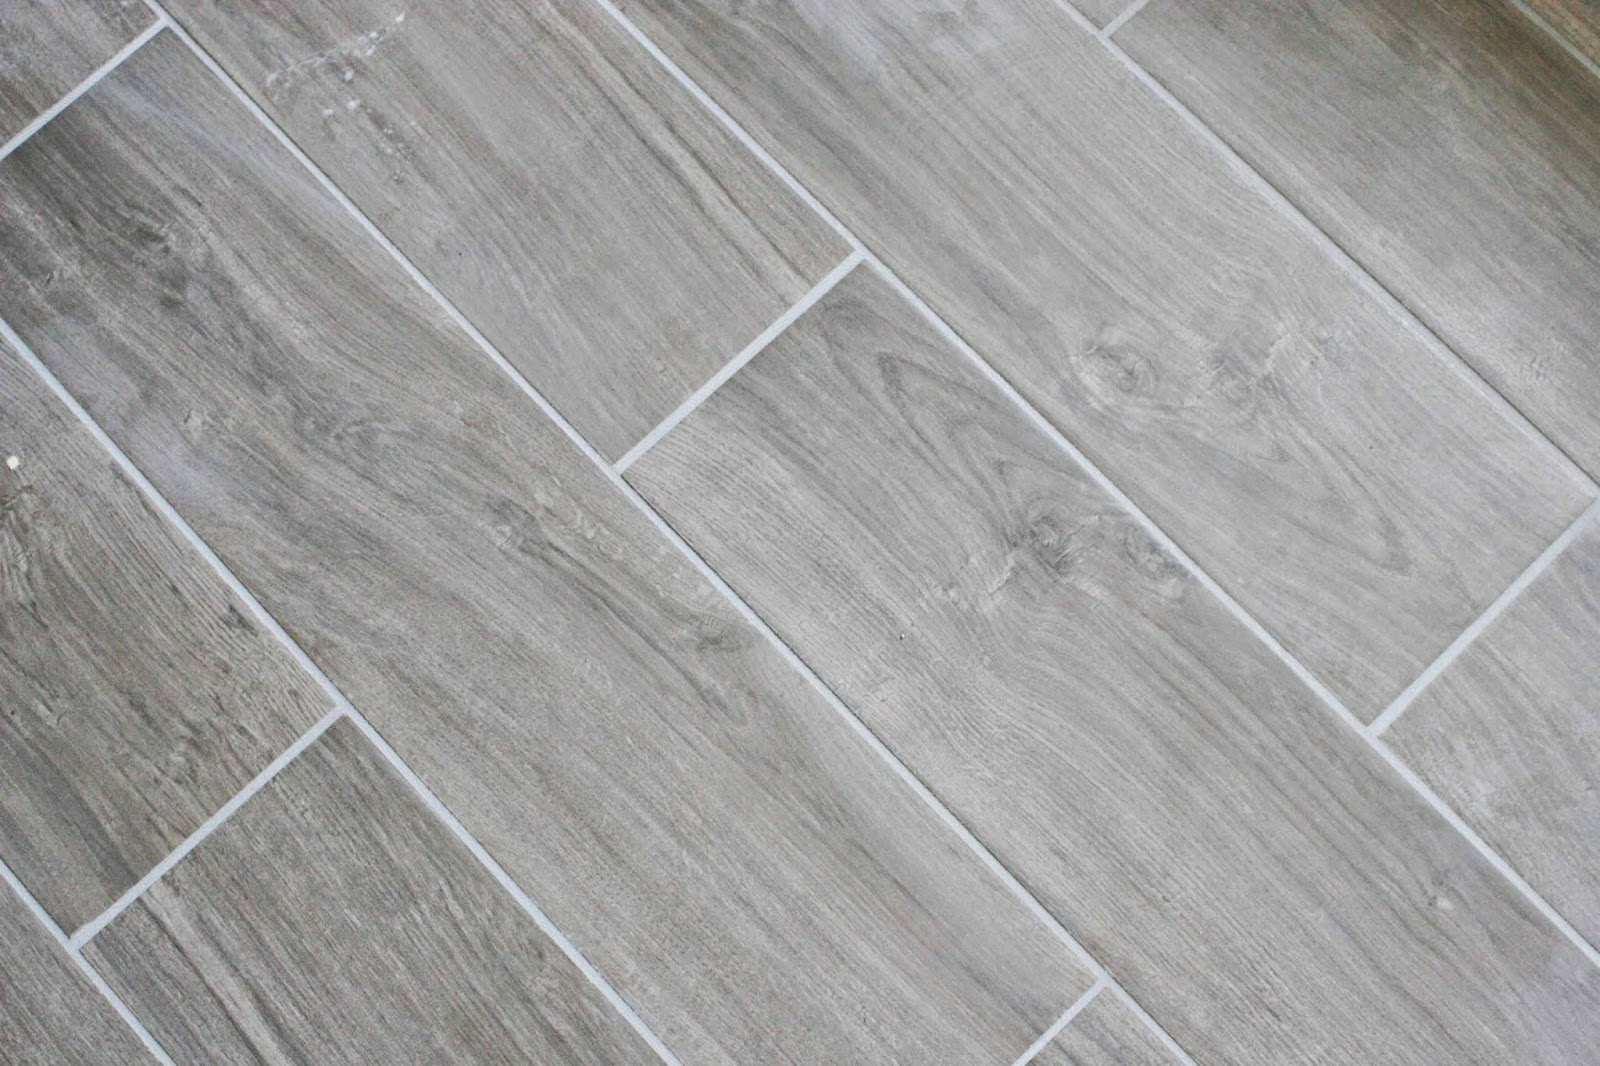 Craftivity designs bathroom renovation tile for Tile and hardwood floor